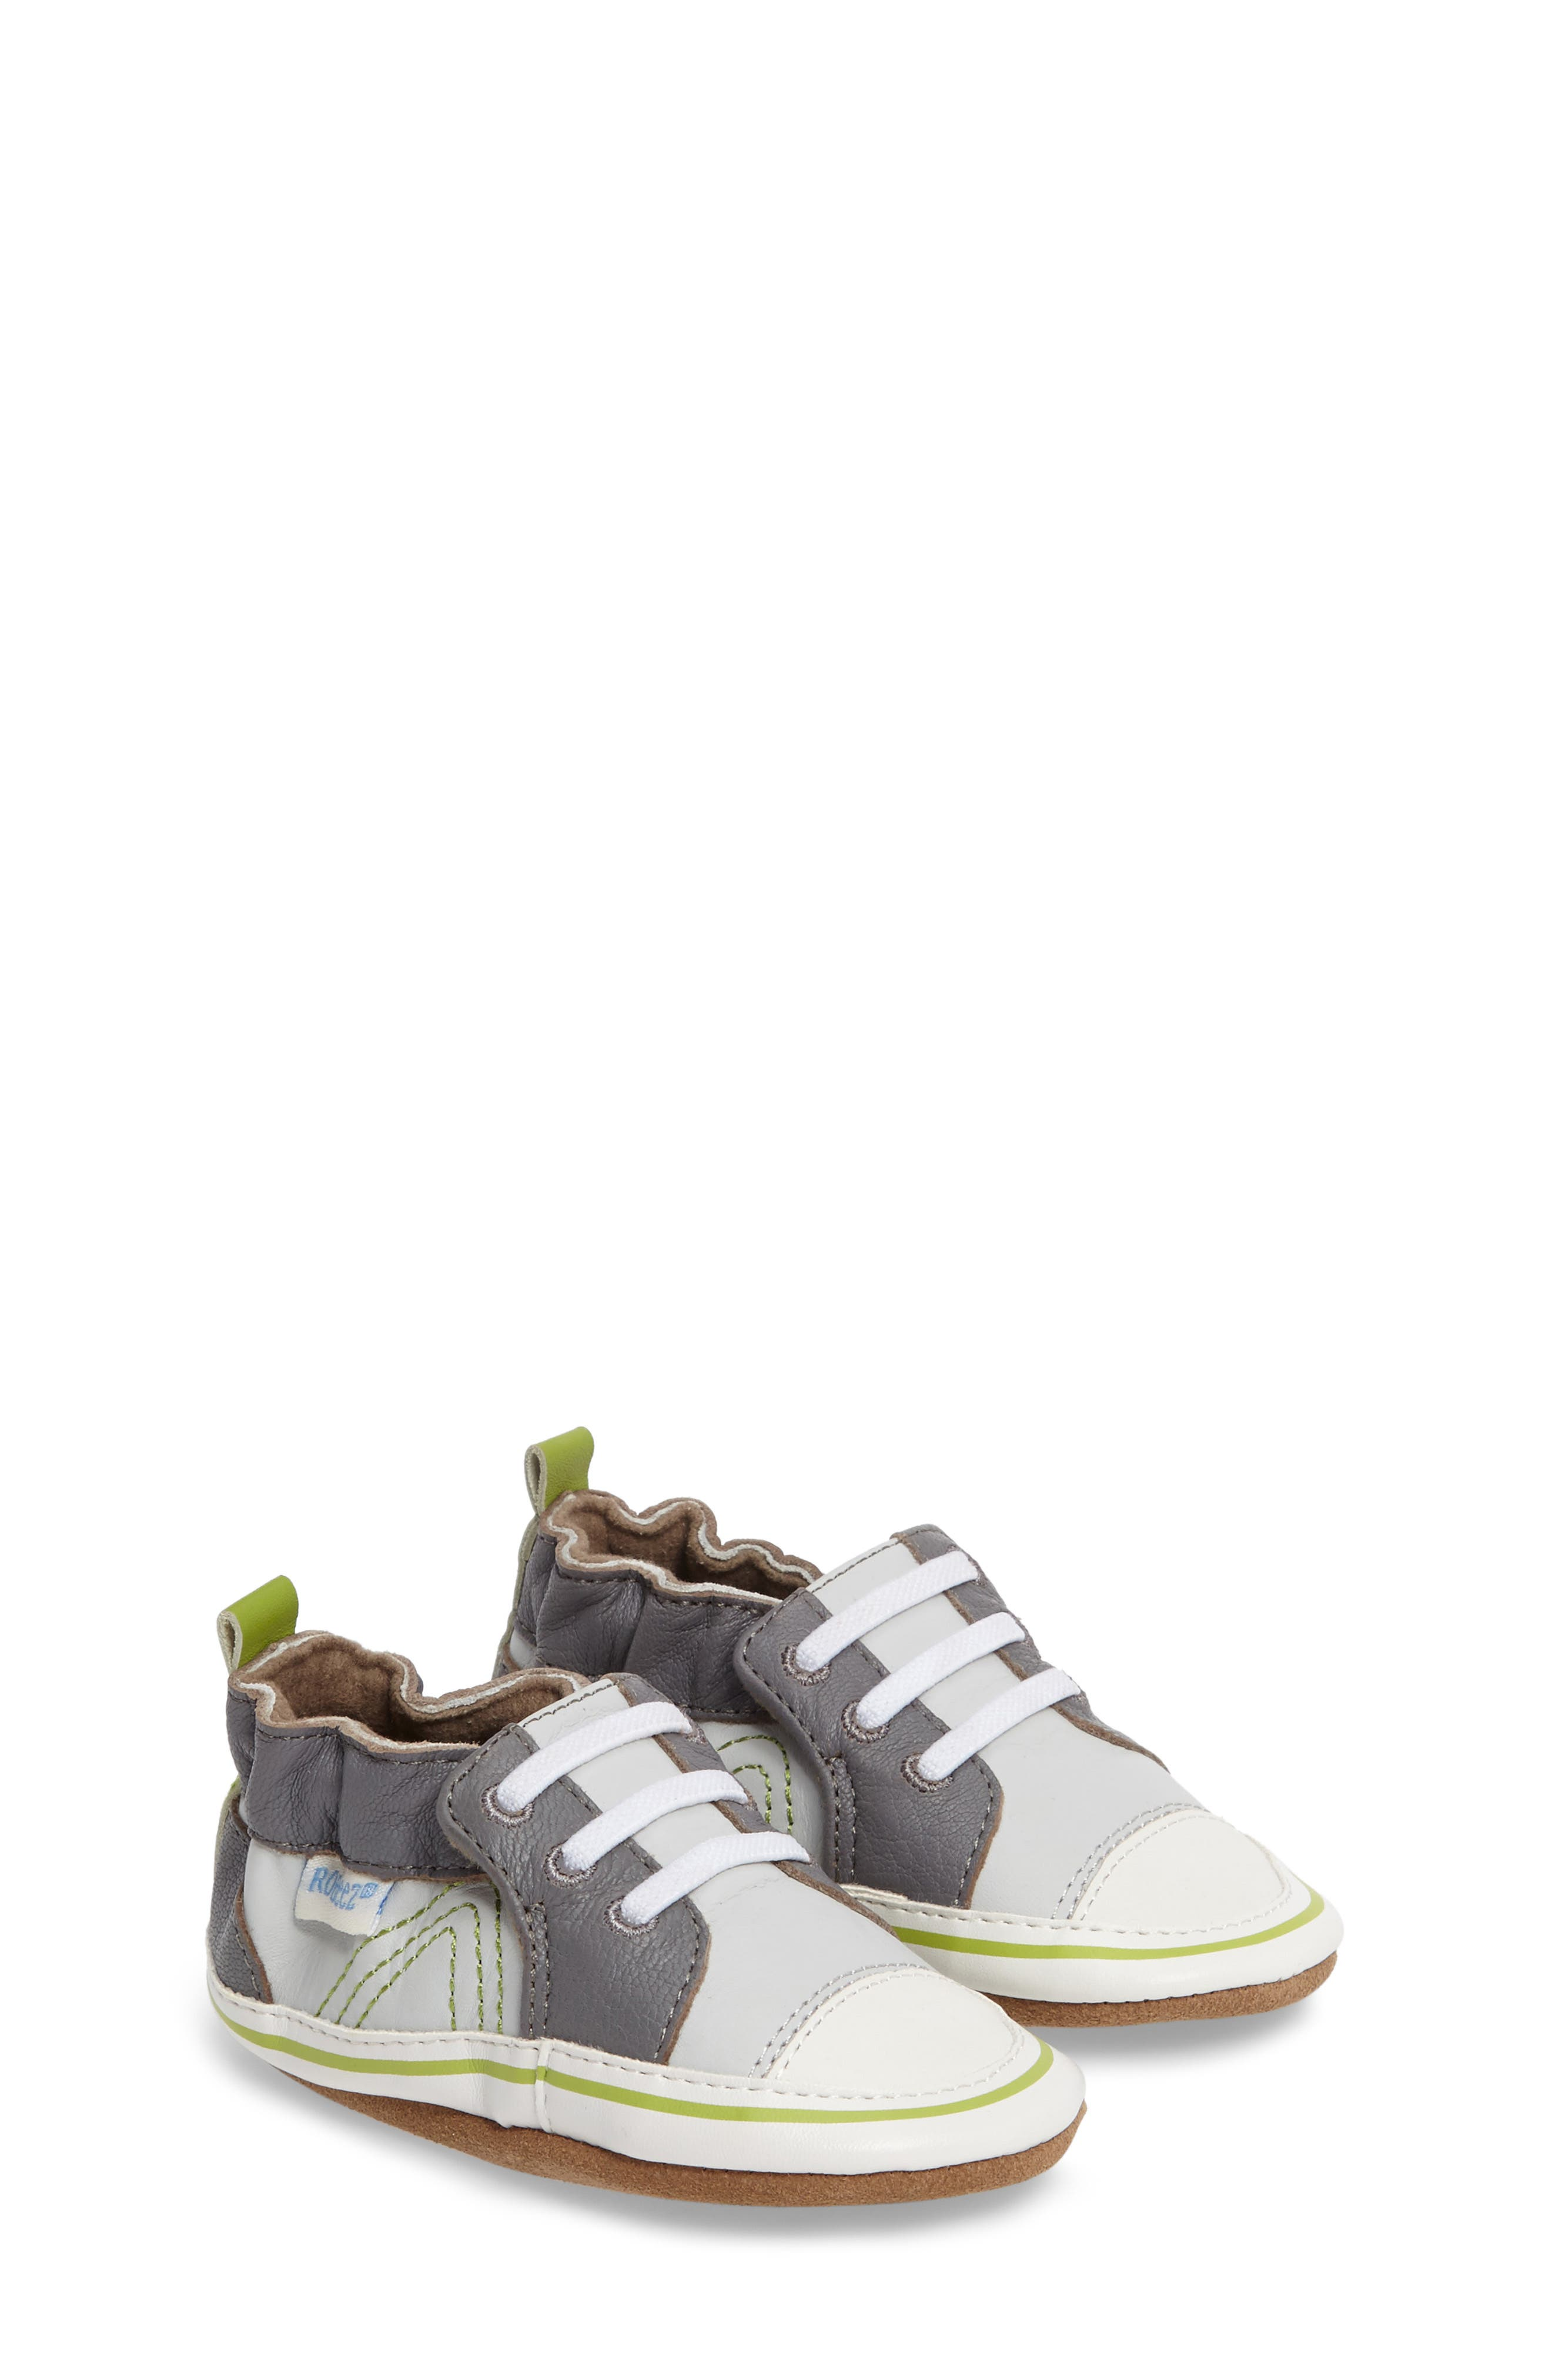 ROBEEZ<SUP>®</SUP> Trendy Trainer Sneaker Crib Shoe